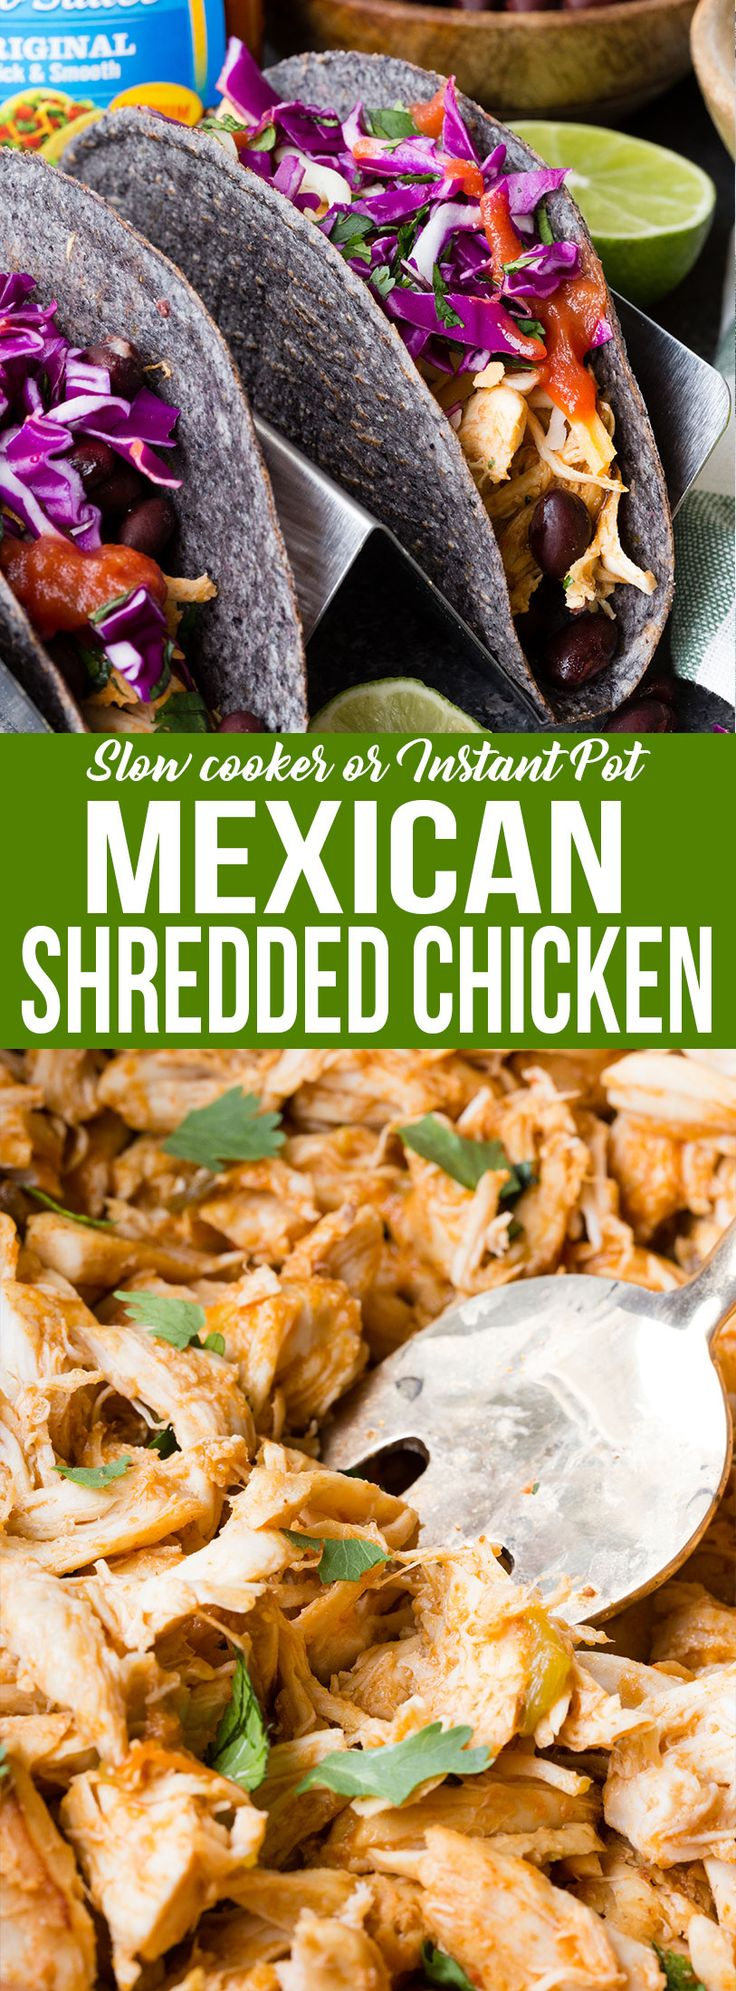 These amazing Mexican Shredded Chicken Tacos are insanely flavorful starting with the shell, and including every ingredient added. Made with Ortega products for unique and authentic Mexican flavors. Perfect for #TacoTuesday #ad